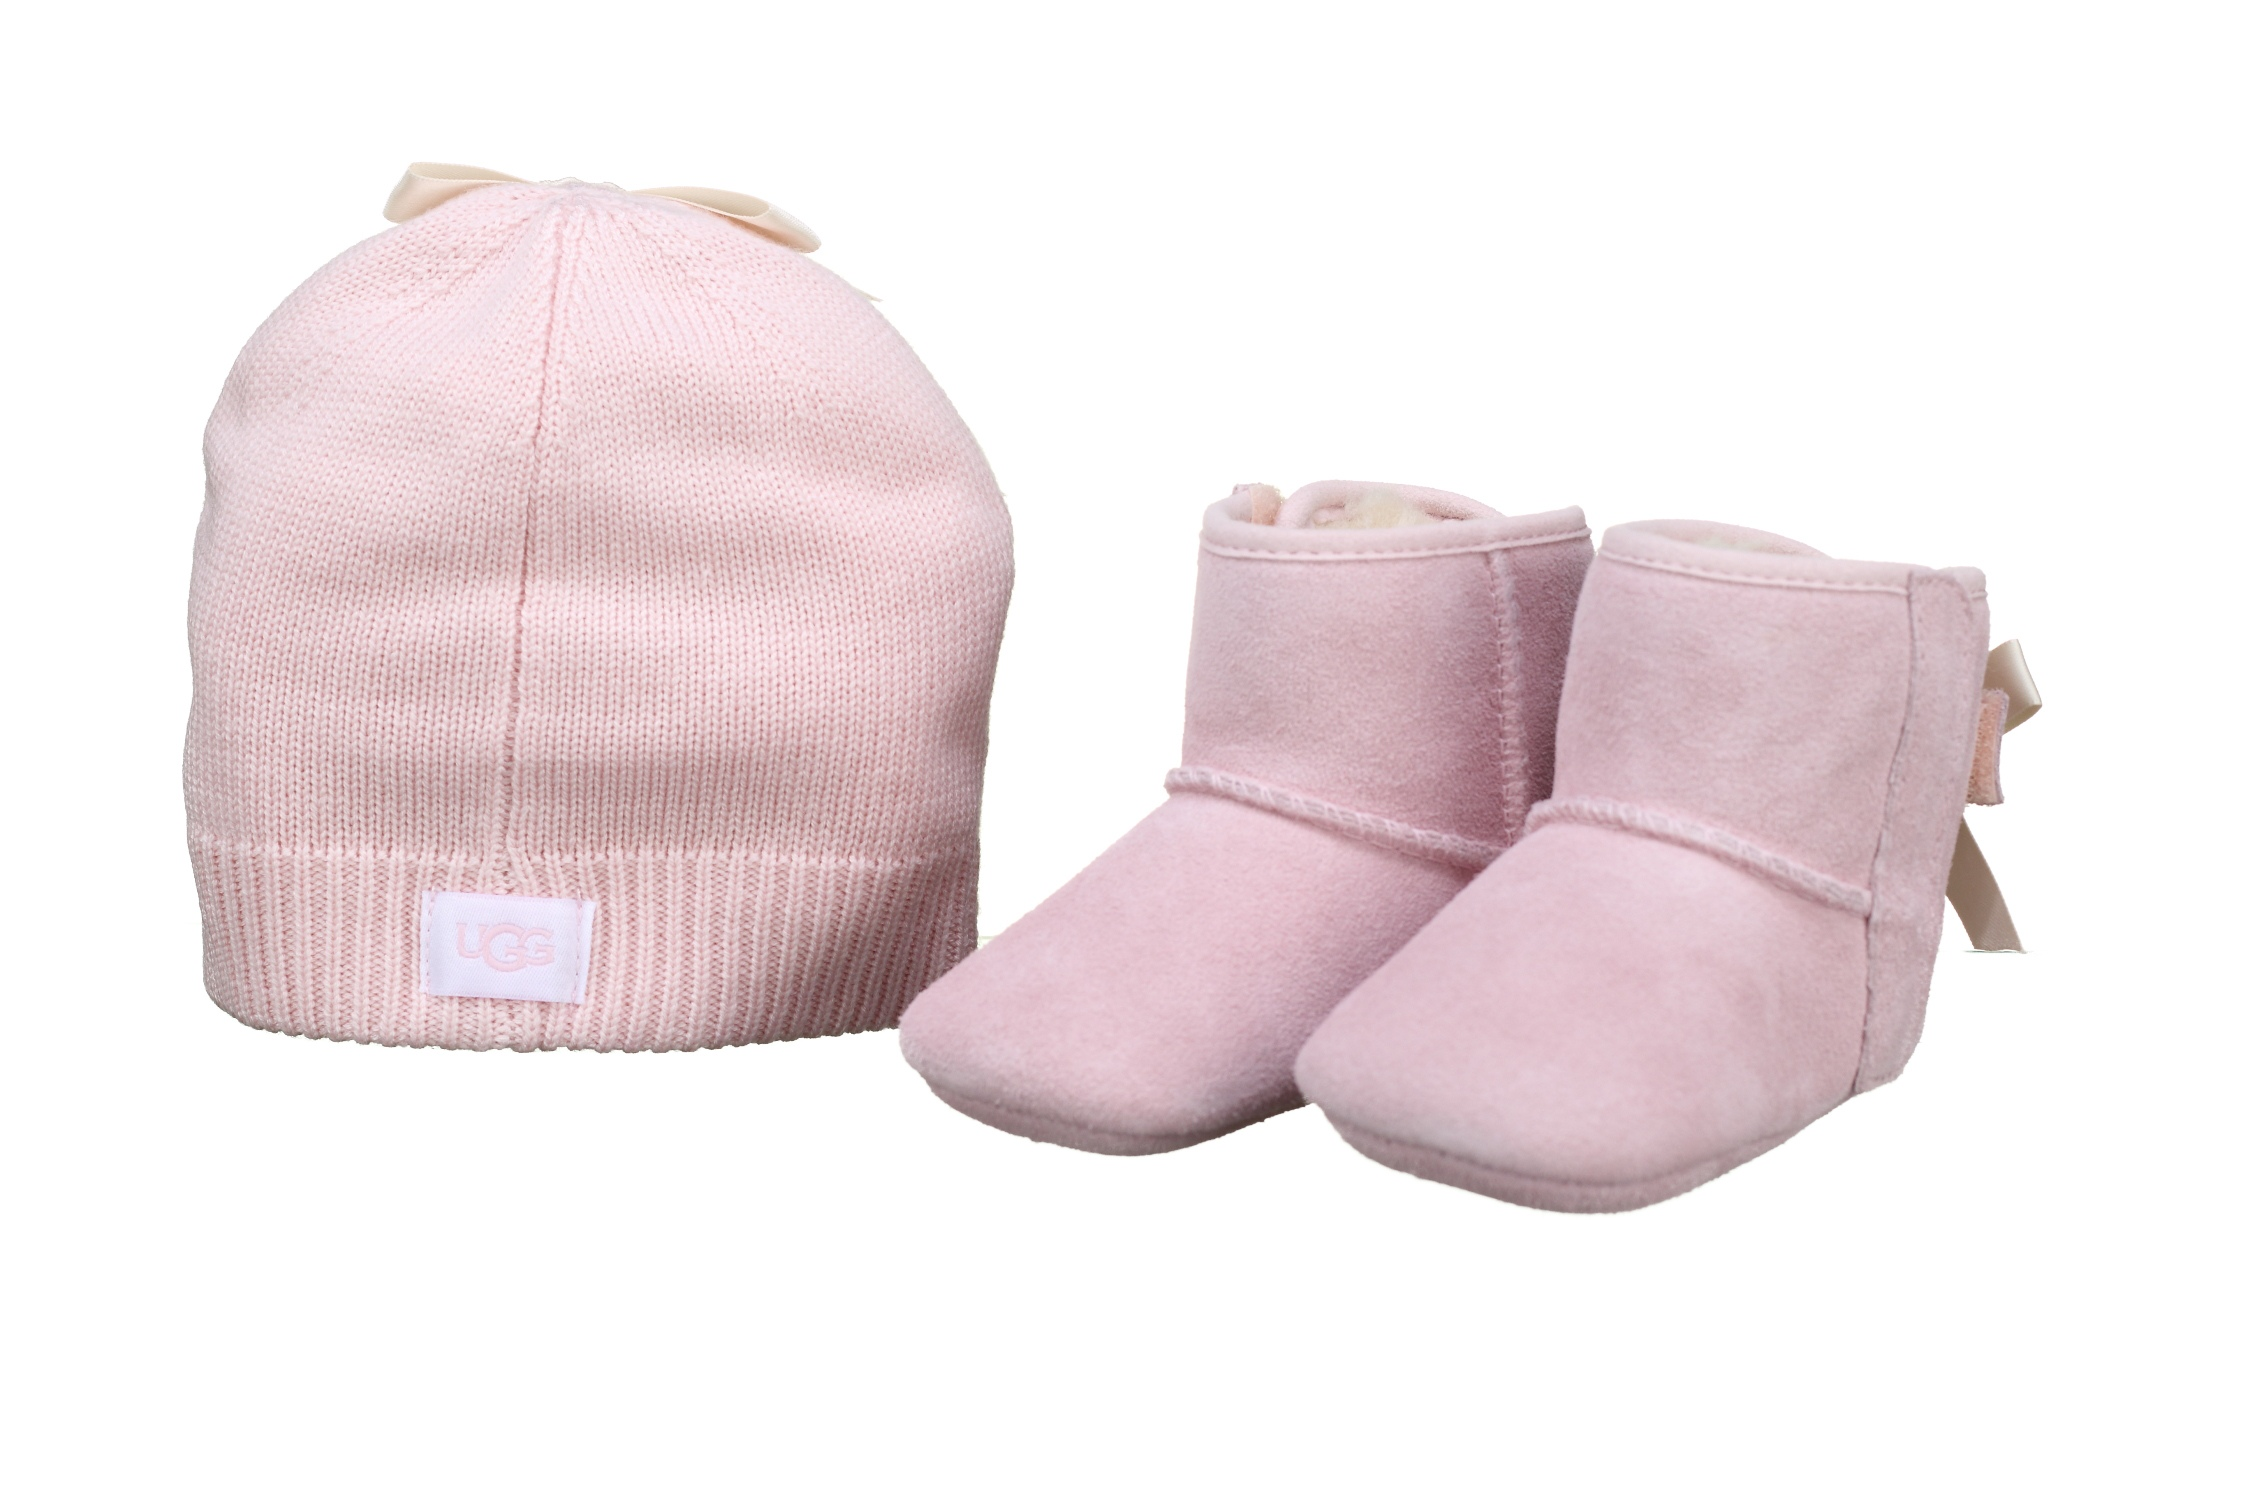 http://www.leadermode.com/180221/ugg-i-jesse-bow-2-and-beanie-1105438i-baby-pink.jpg